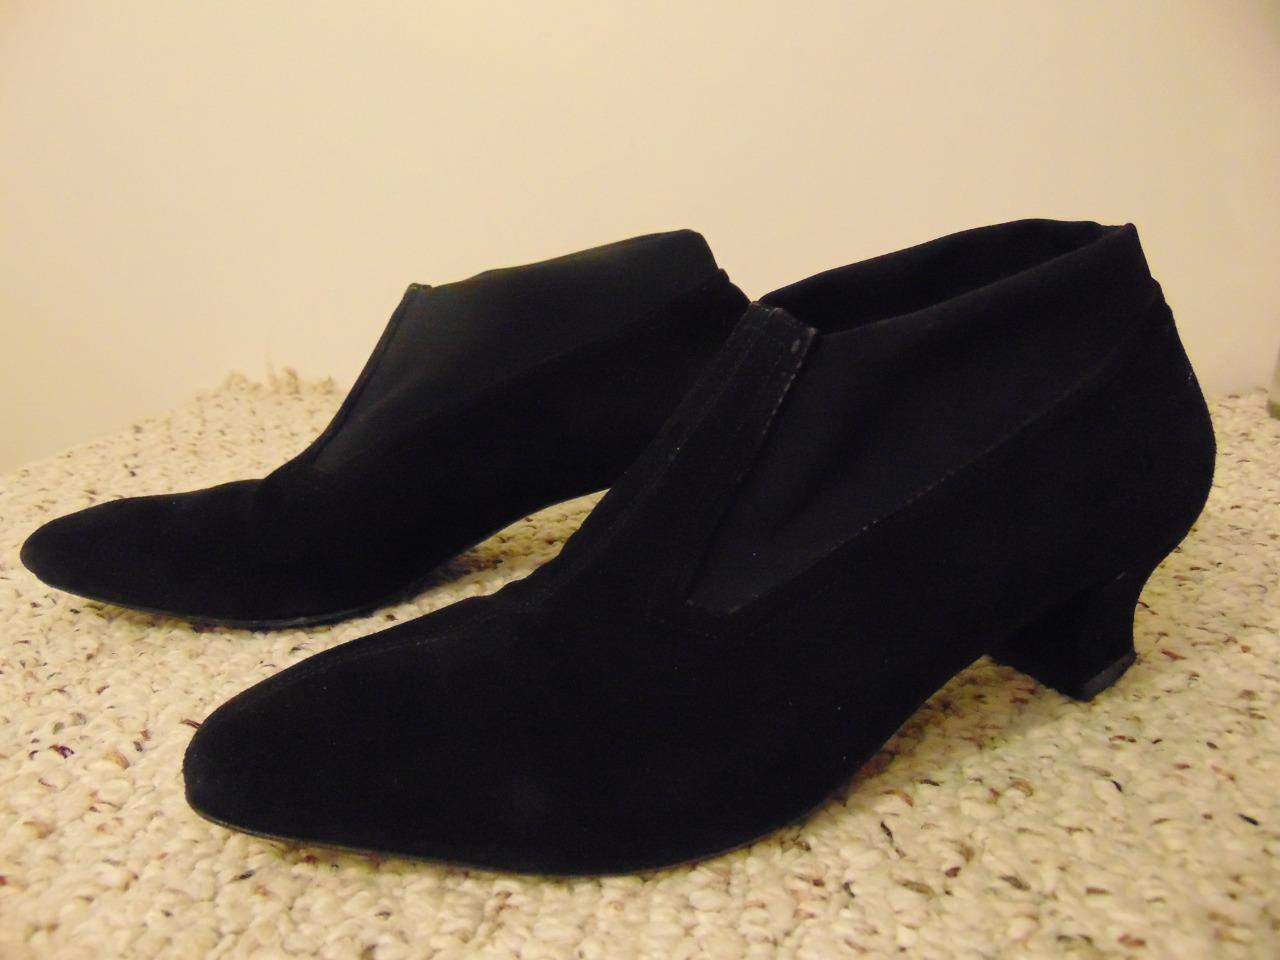 428 Women Thierry Rabotin Suede Black Booties Flair Shoes Size 37.5